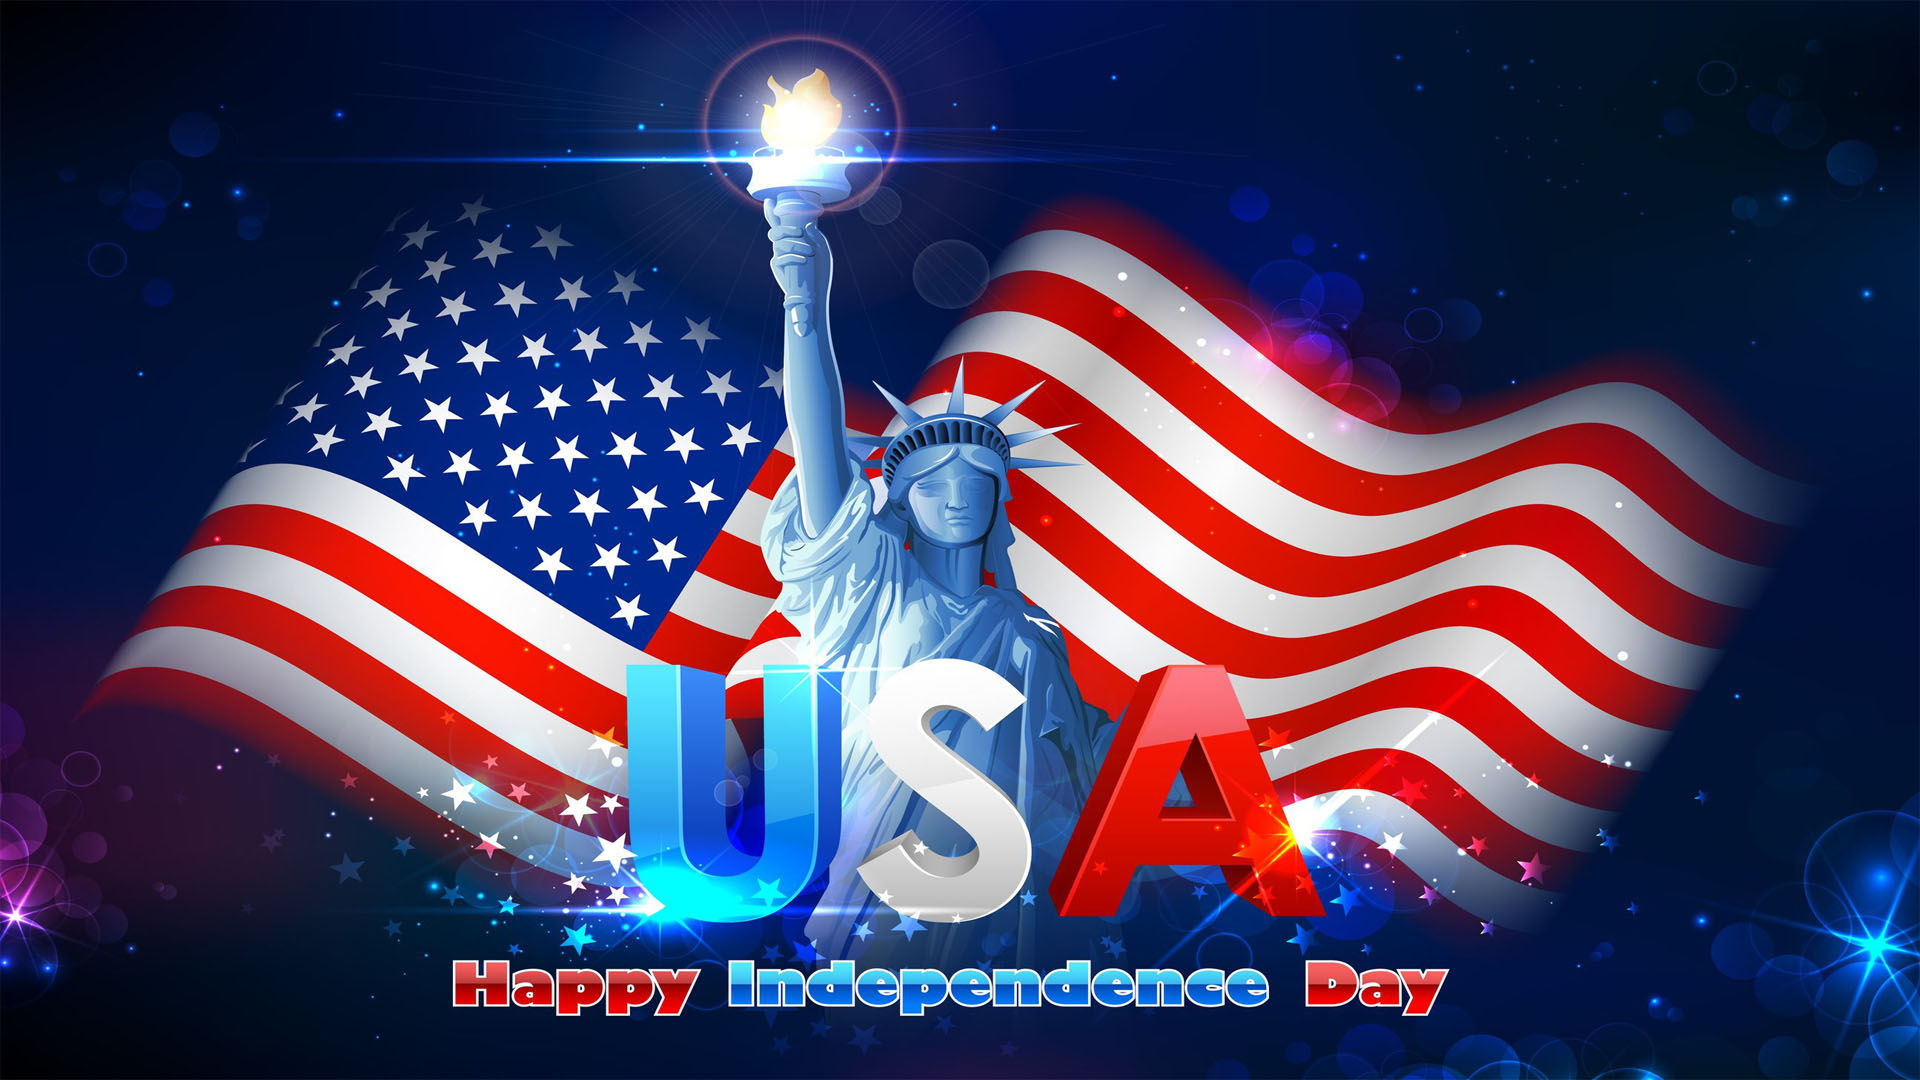 268506-Happy-Independence-Day.jpg